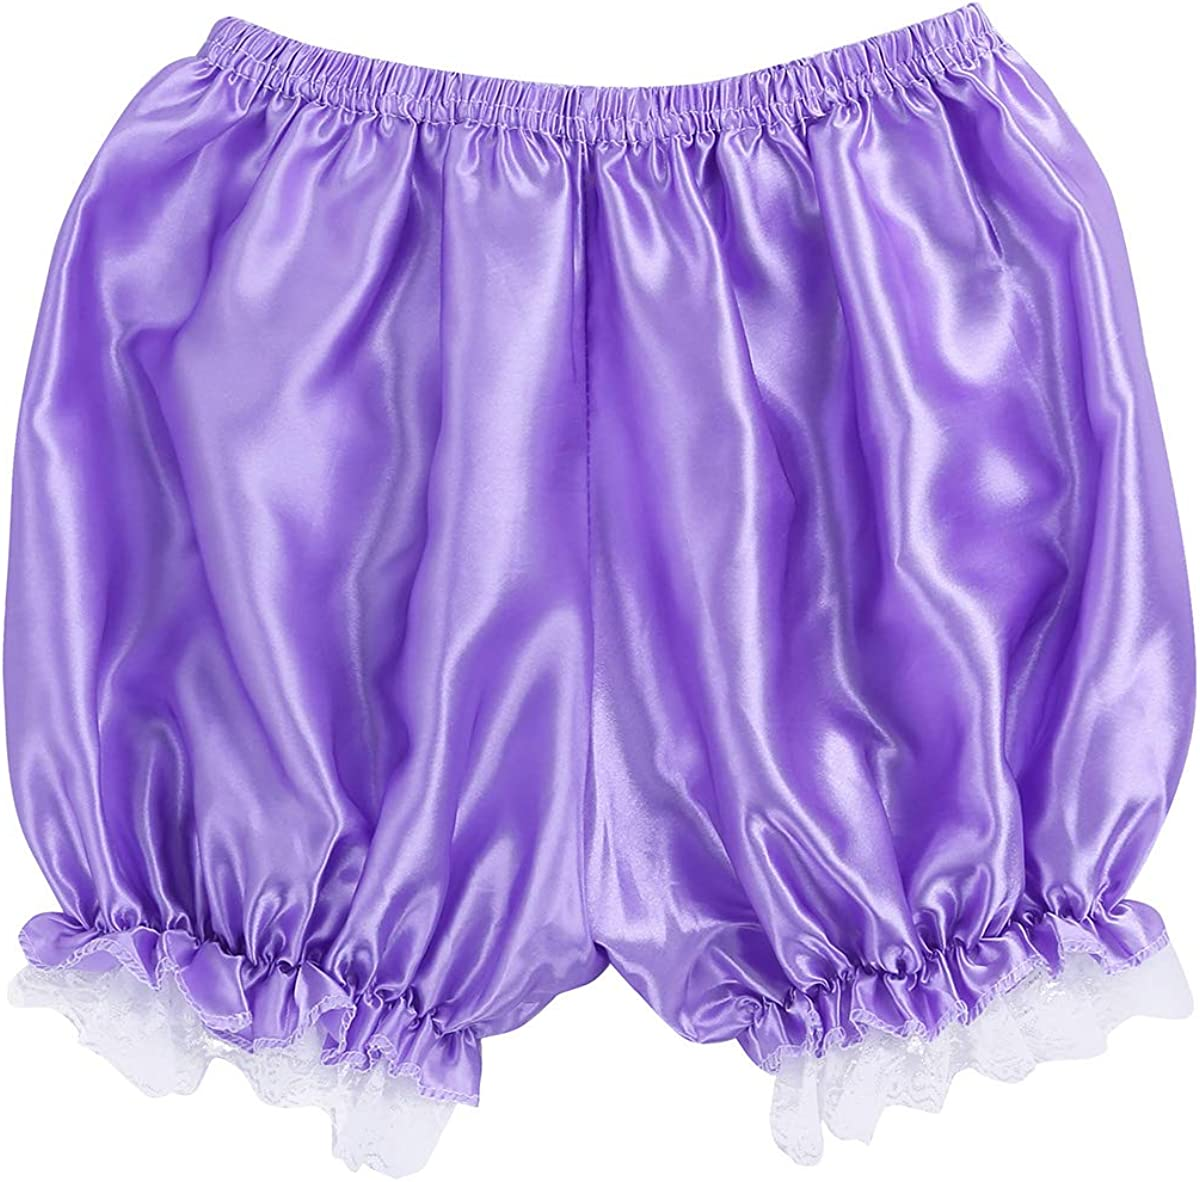 Doomiva Womens Shiny Satin Lace Trim Panties Ruffle Bloomer Victorian Maid Pumpkin Shorts